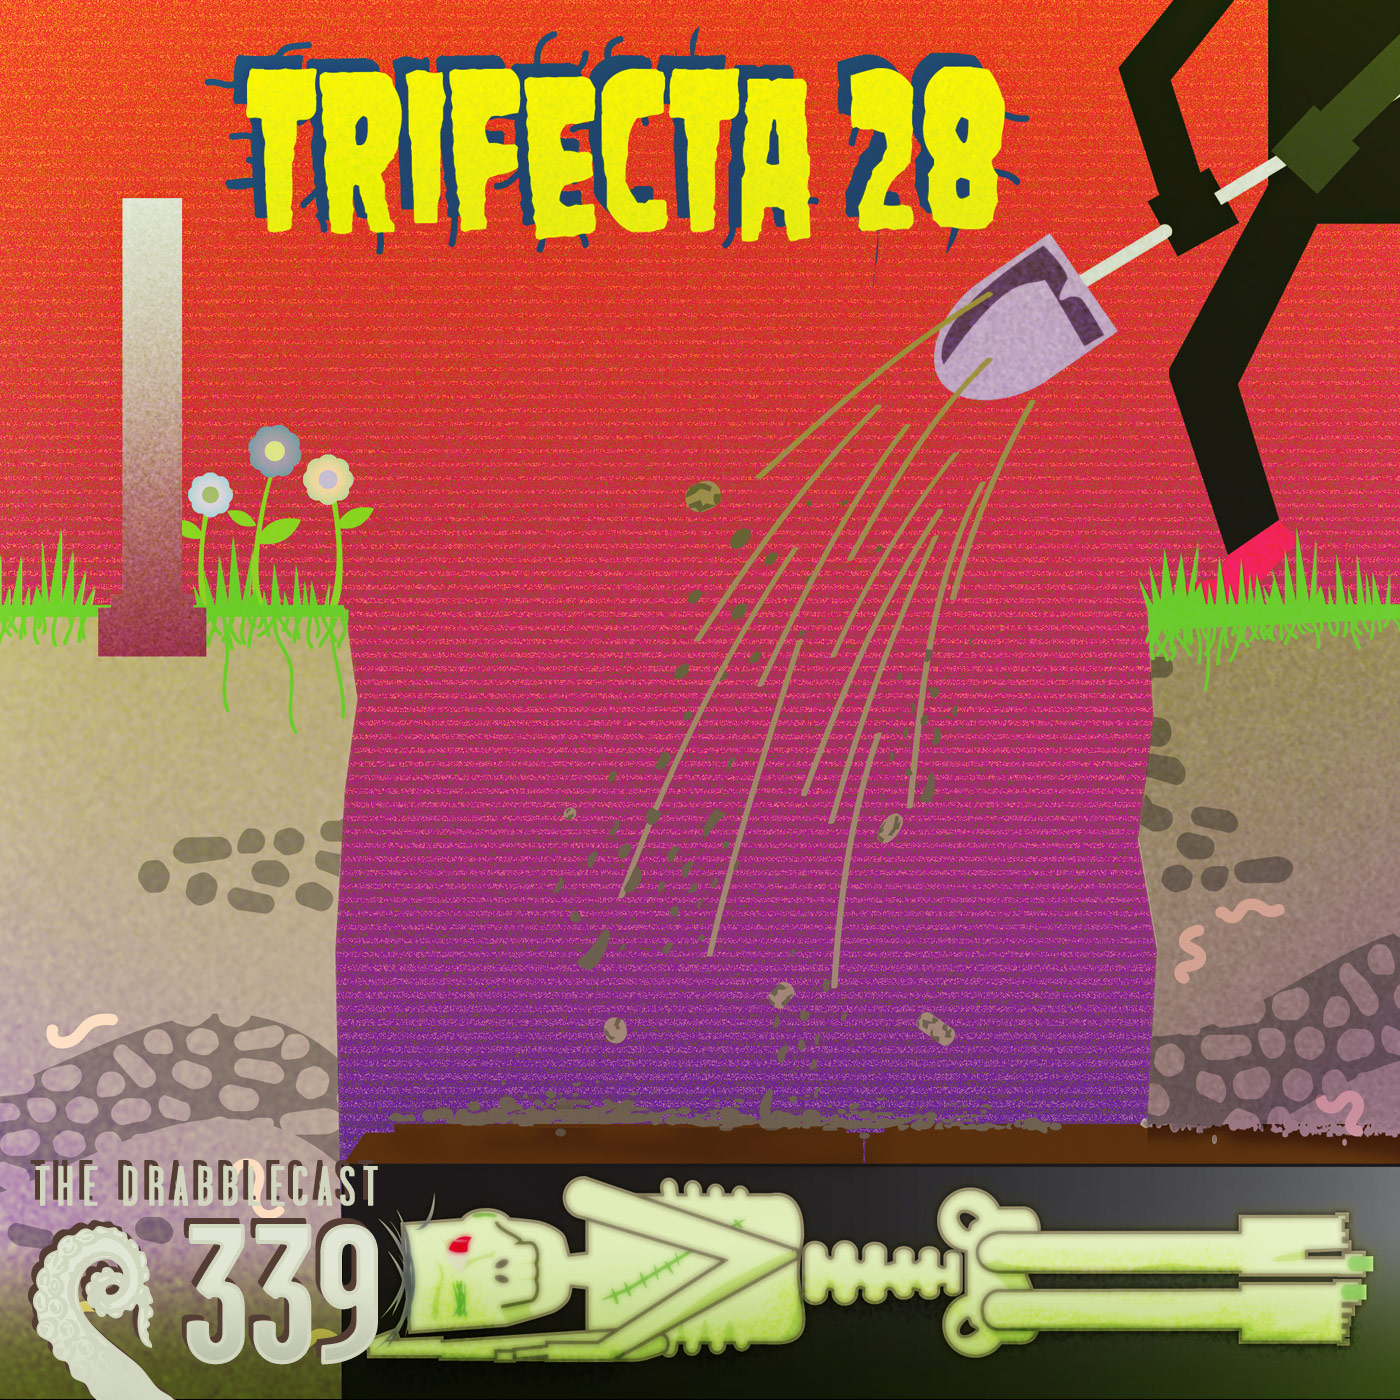 Cover for Drabblecast episode 339, Trifecta 28, by Brent Holmes